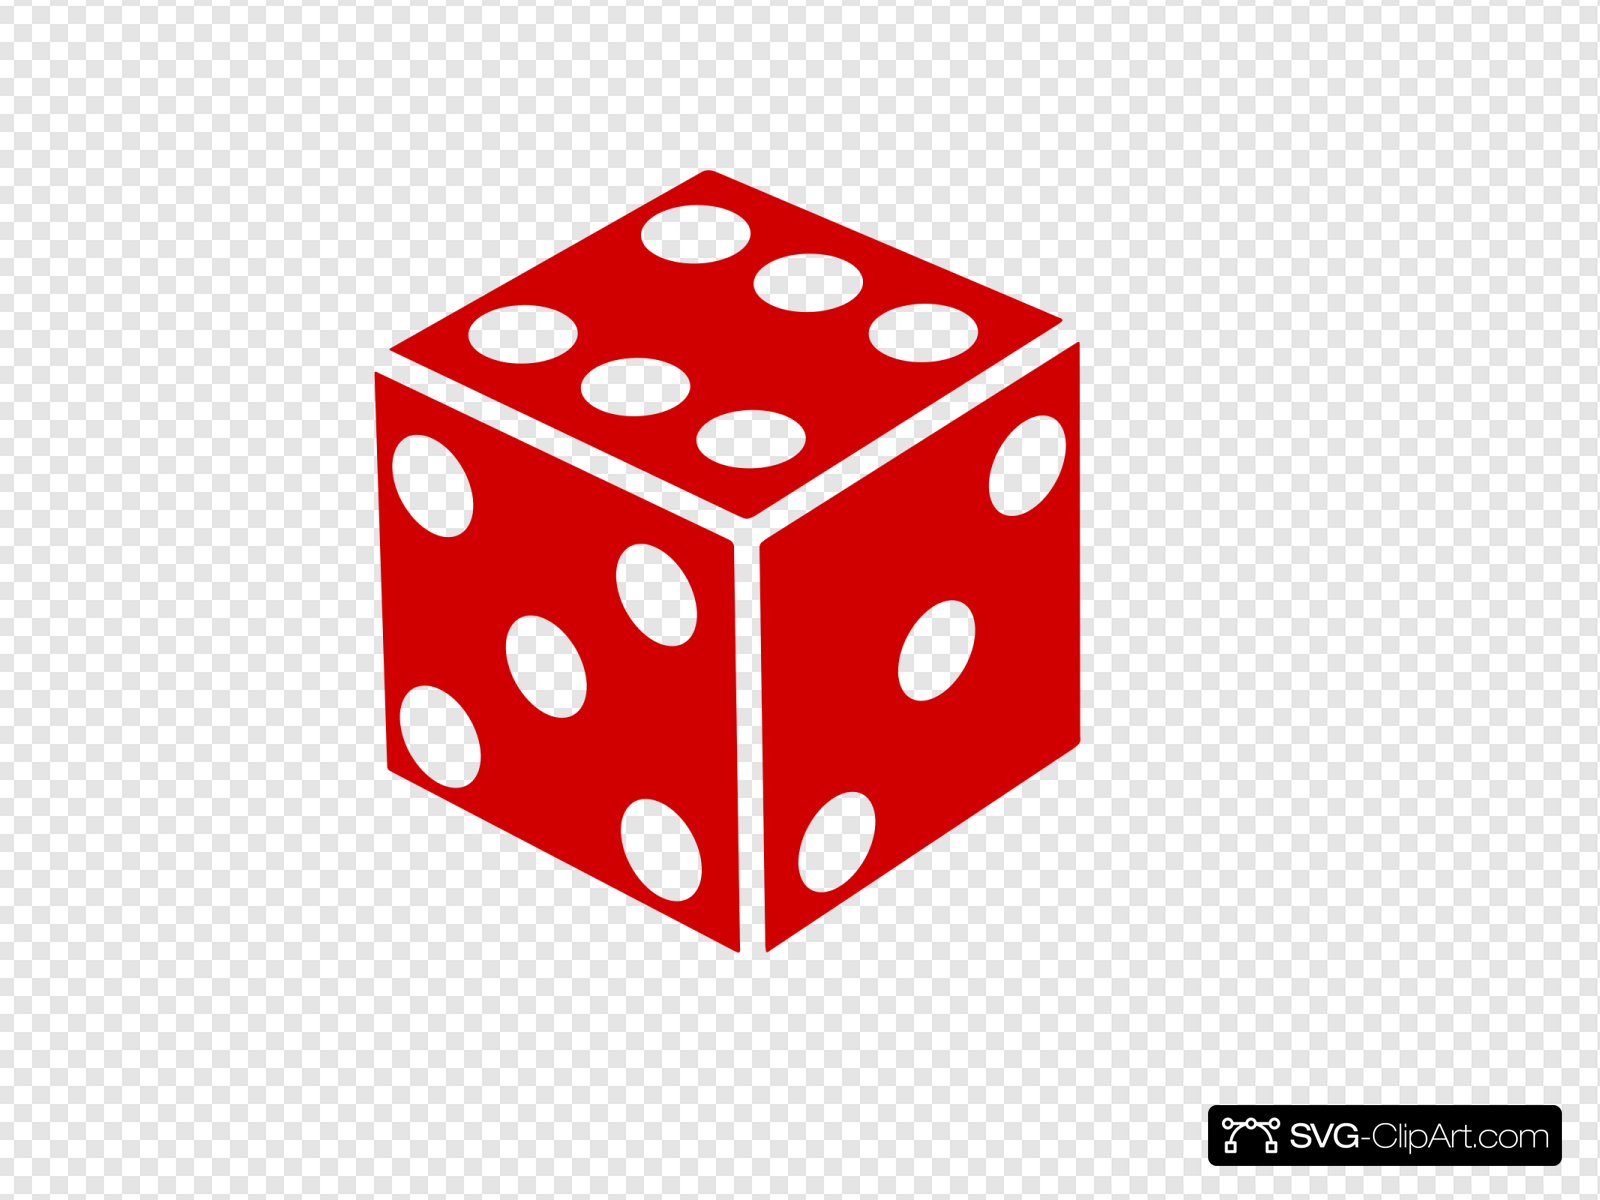 Six Sided Dice Clip art, Icon and SVG.